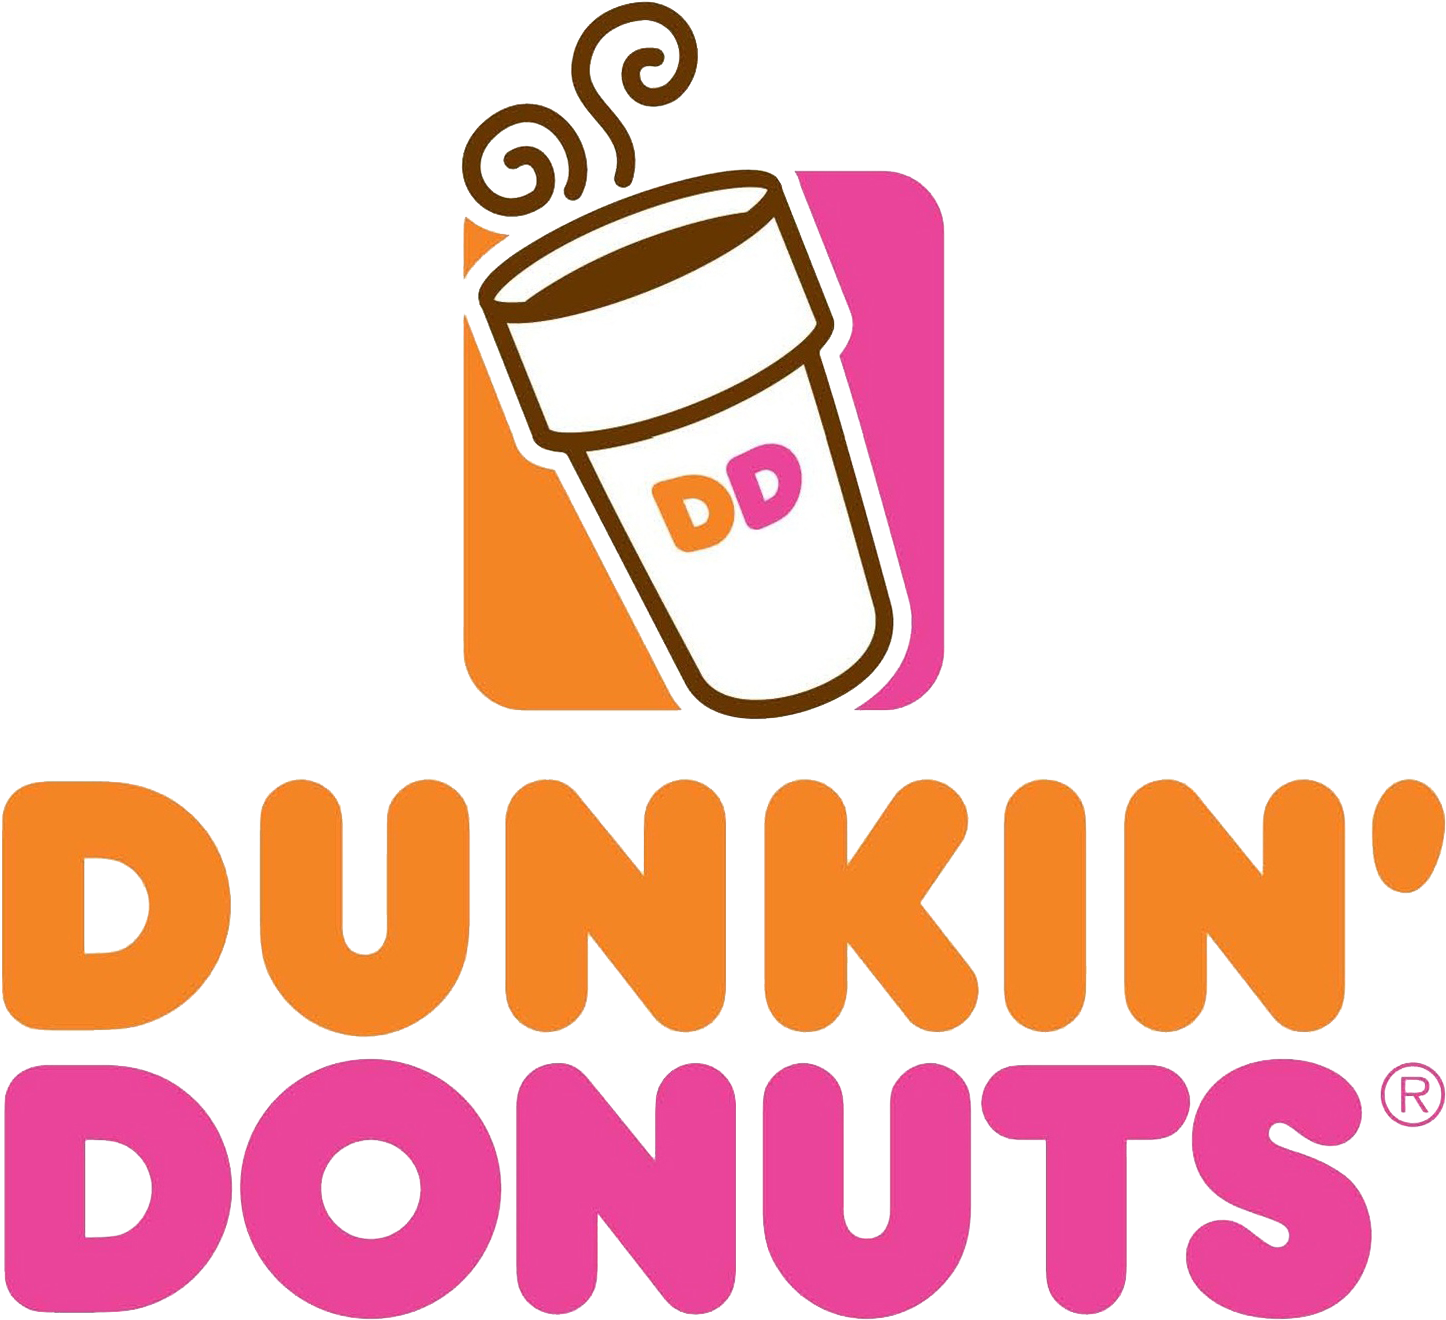 Dunkin Donuts Logo Png Clipart - Full Size Clipart ...